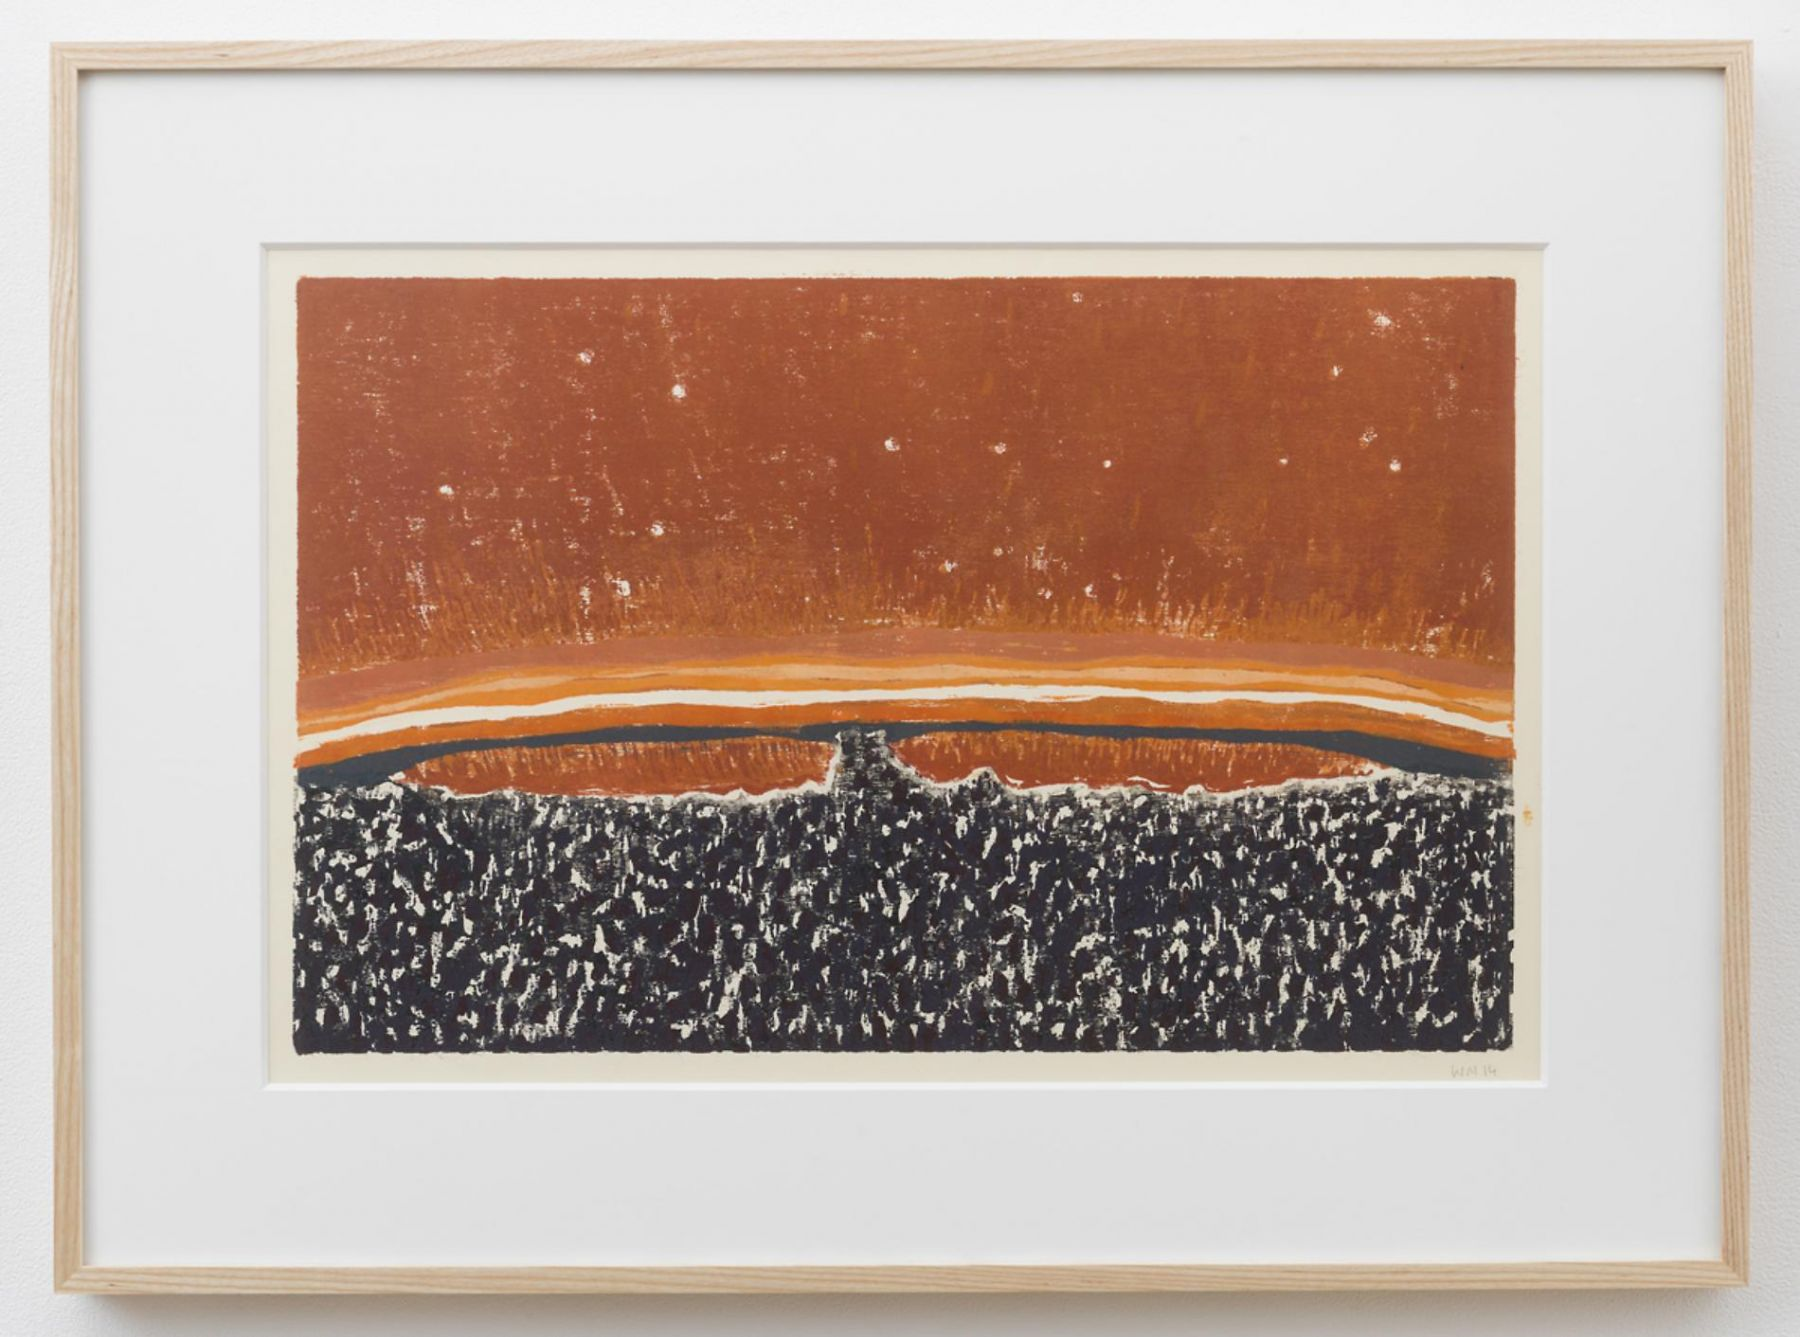 , WILLIAM MONK Untitled III (Fulcrum), 2014 Woodcut on paper 16 1/2 x 24 3/8 in. (42 x 62 cm)